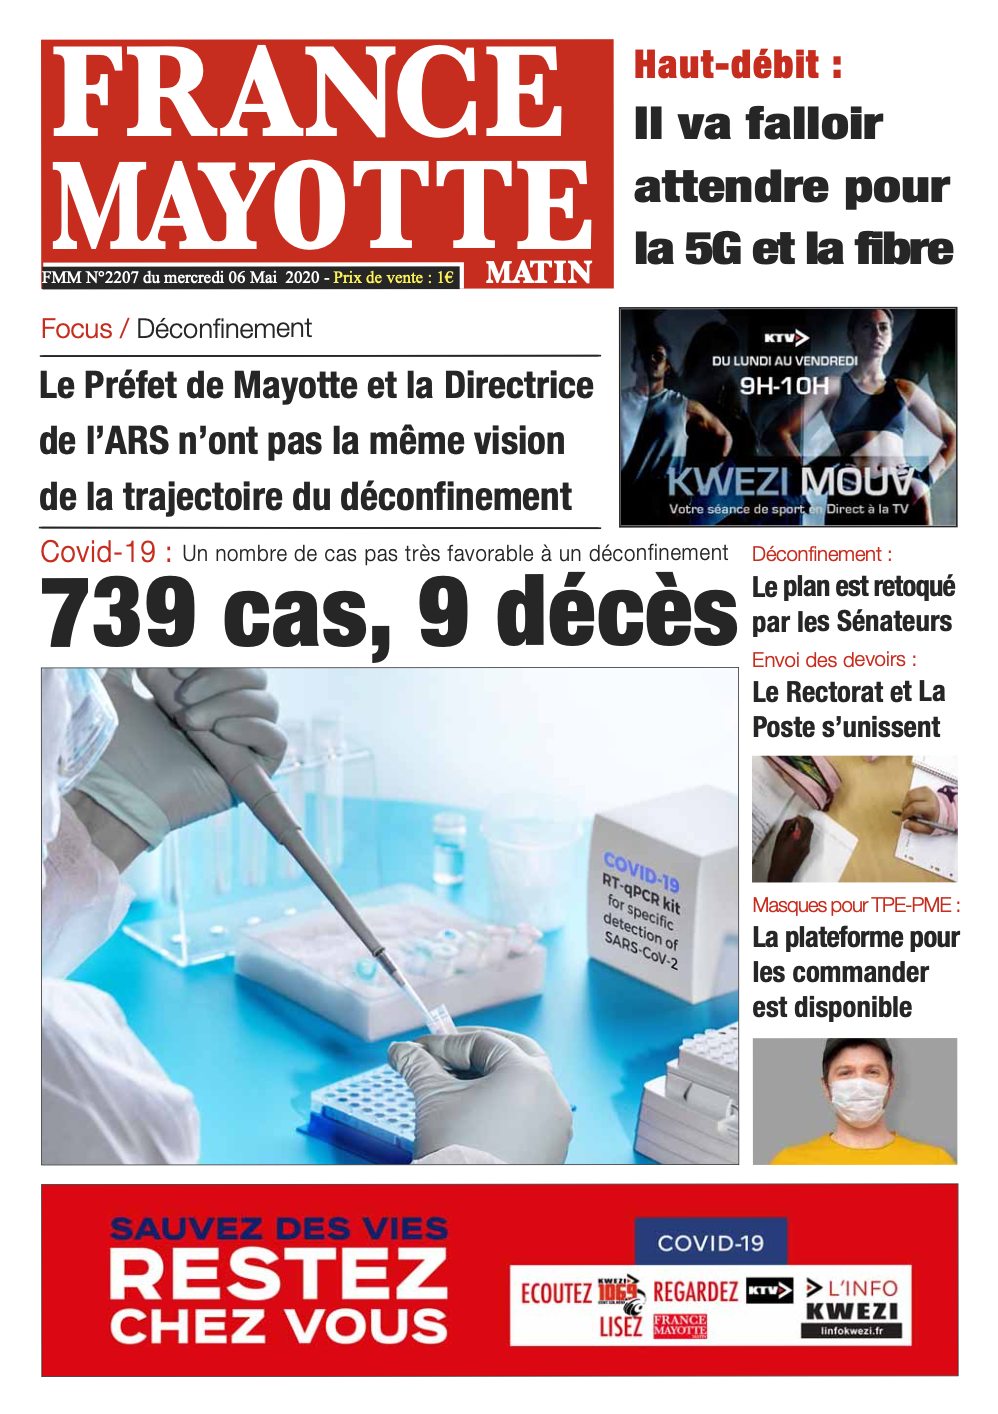 France Mayotte Mercredi 6 mai 2020